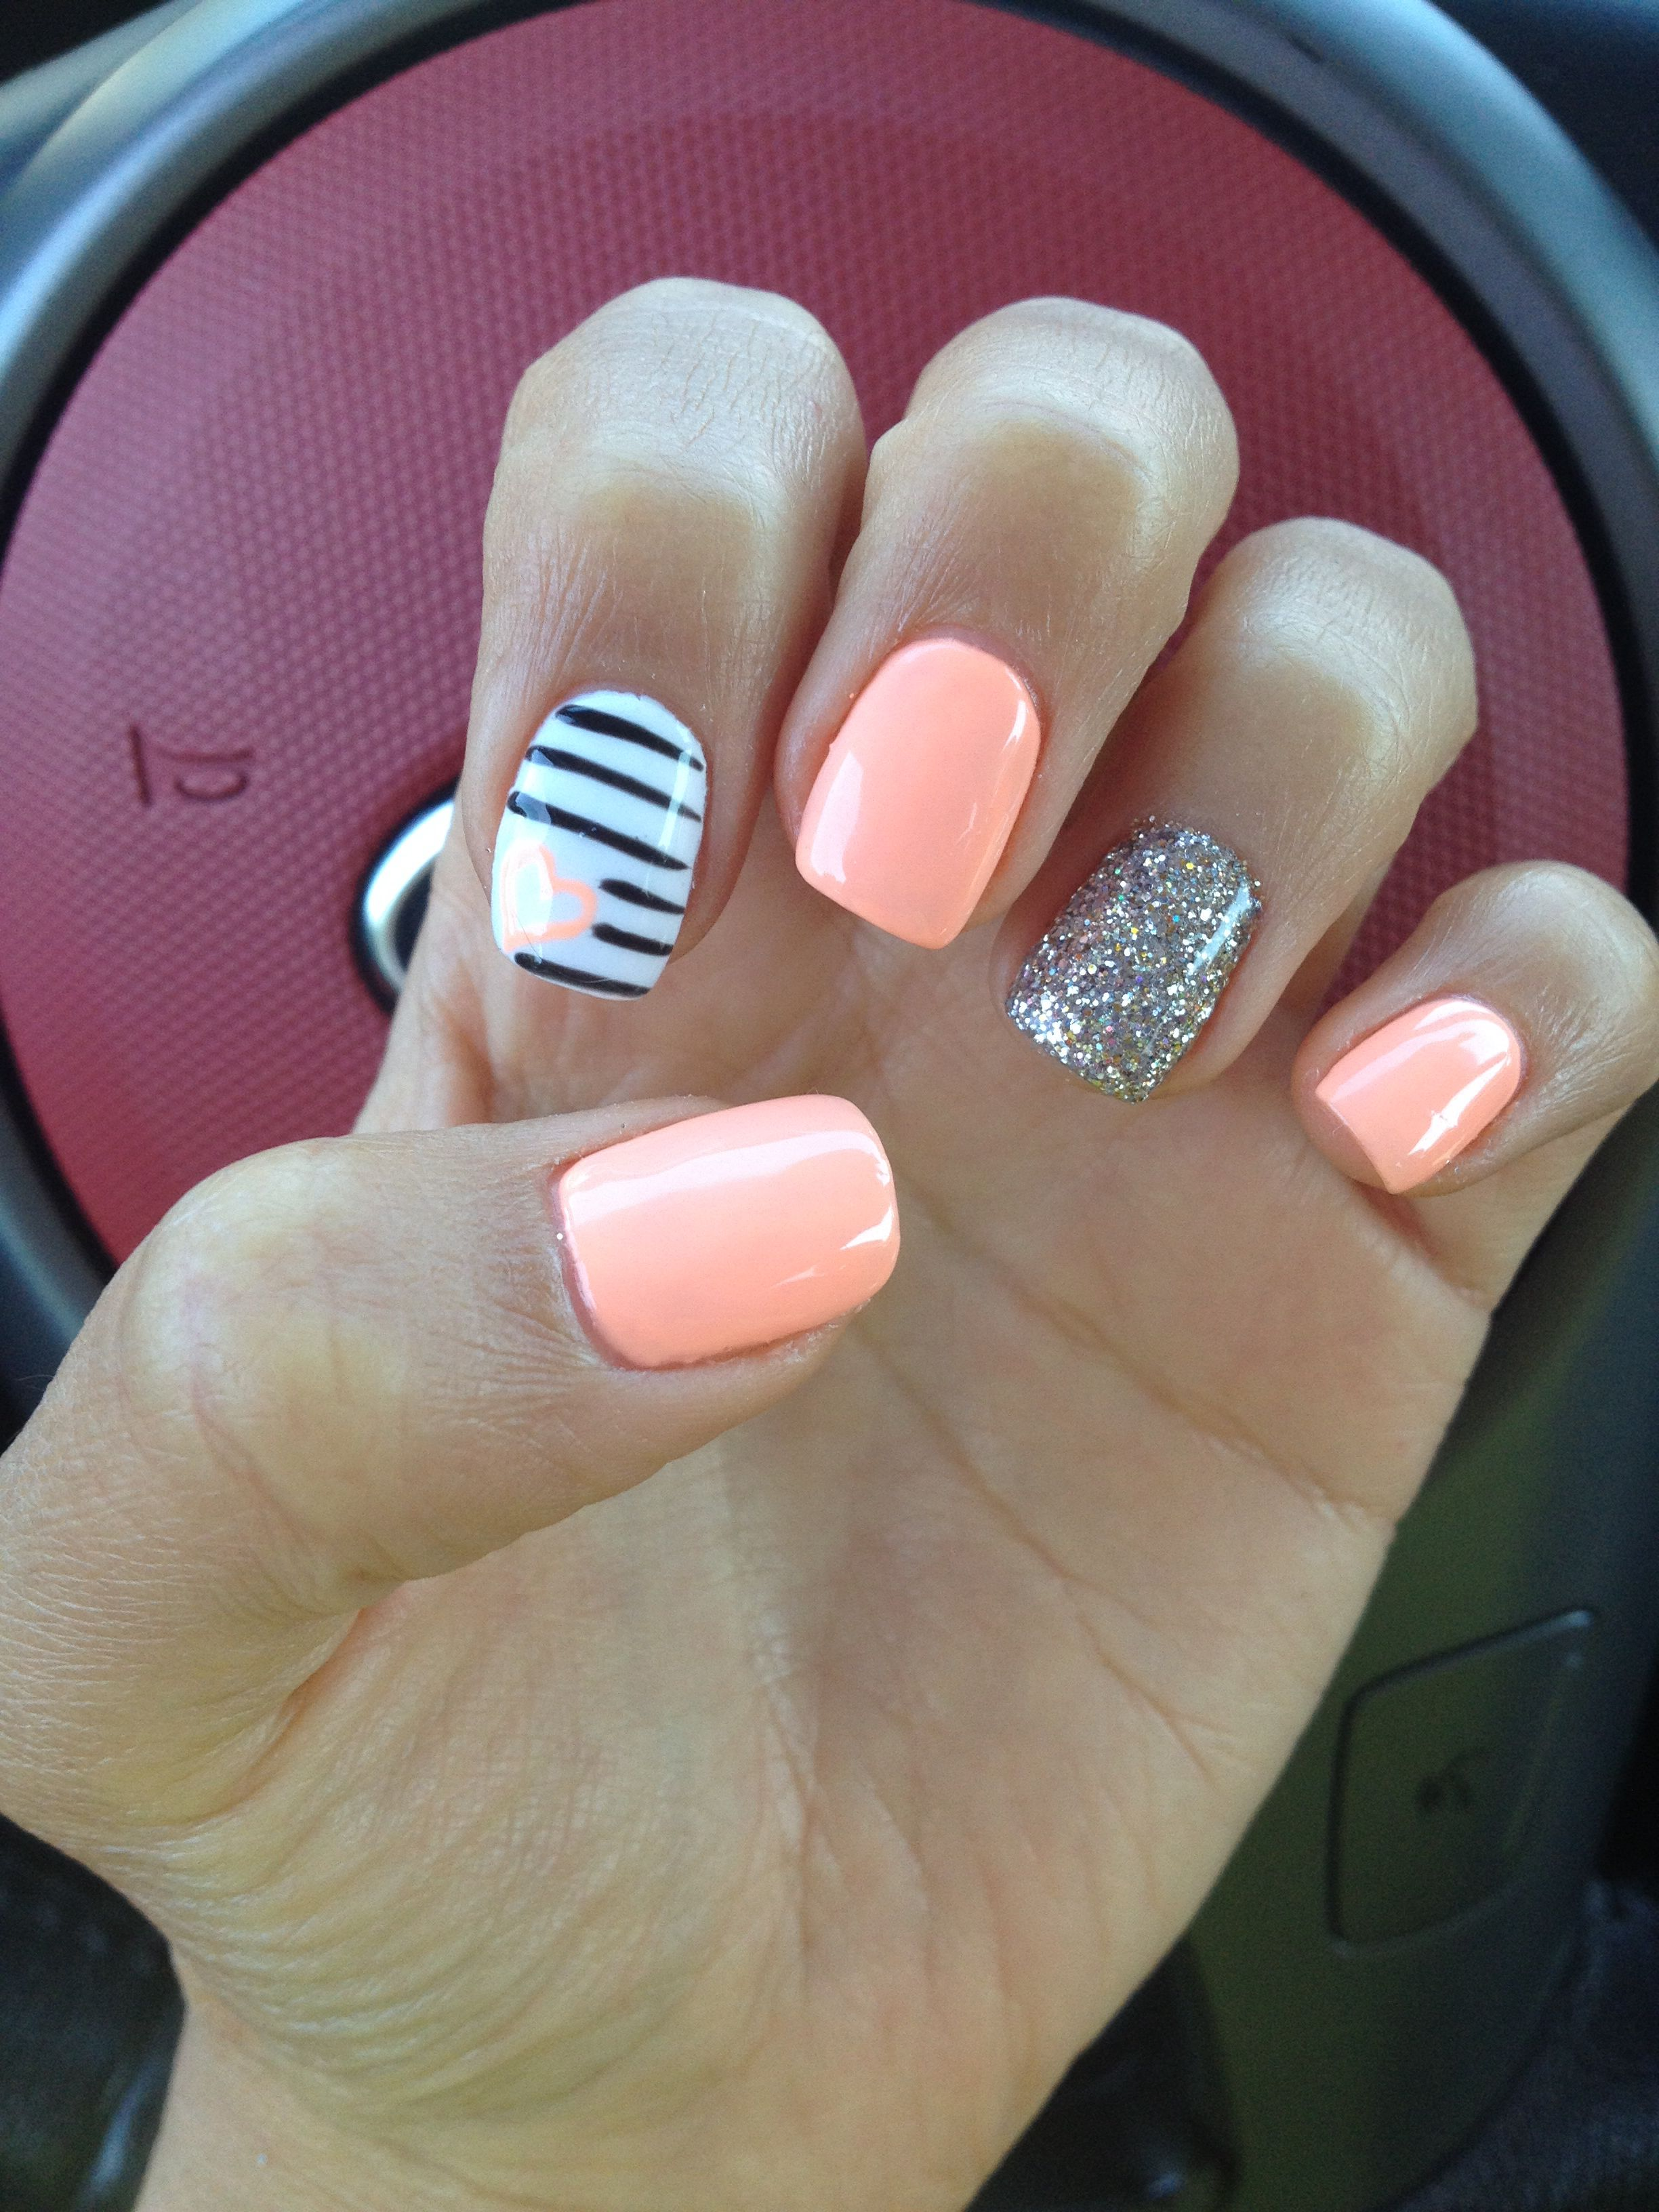 40 Summer Nails Art Ideas For A Fresh And Sunny Vibe Cute Gel